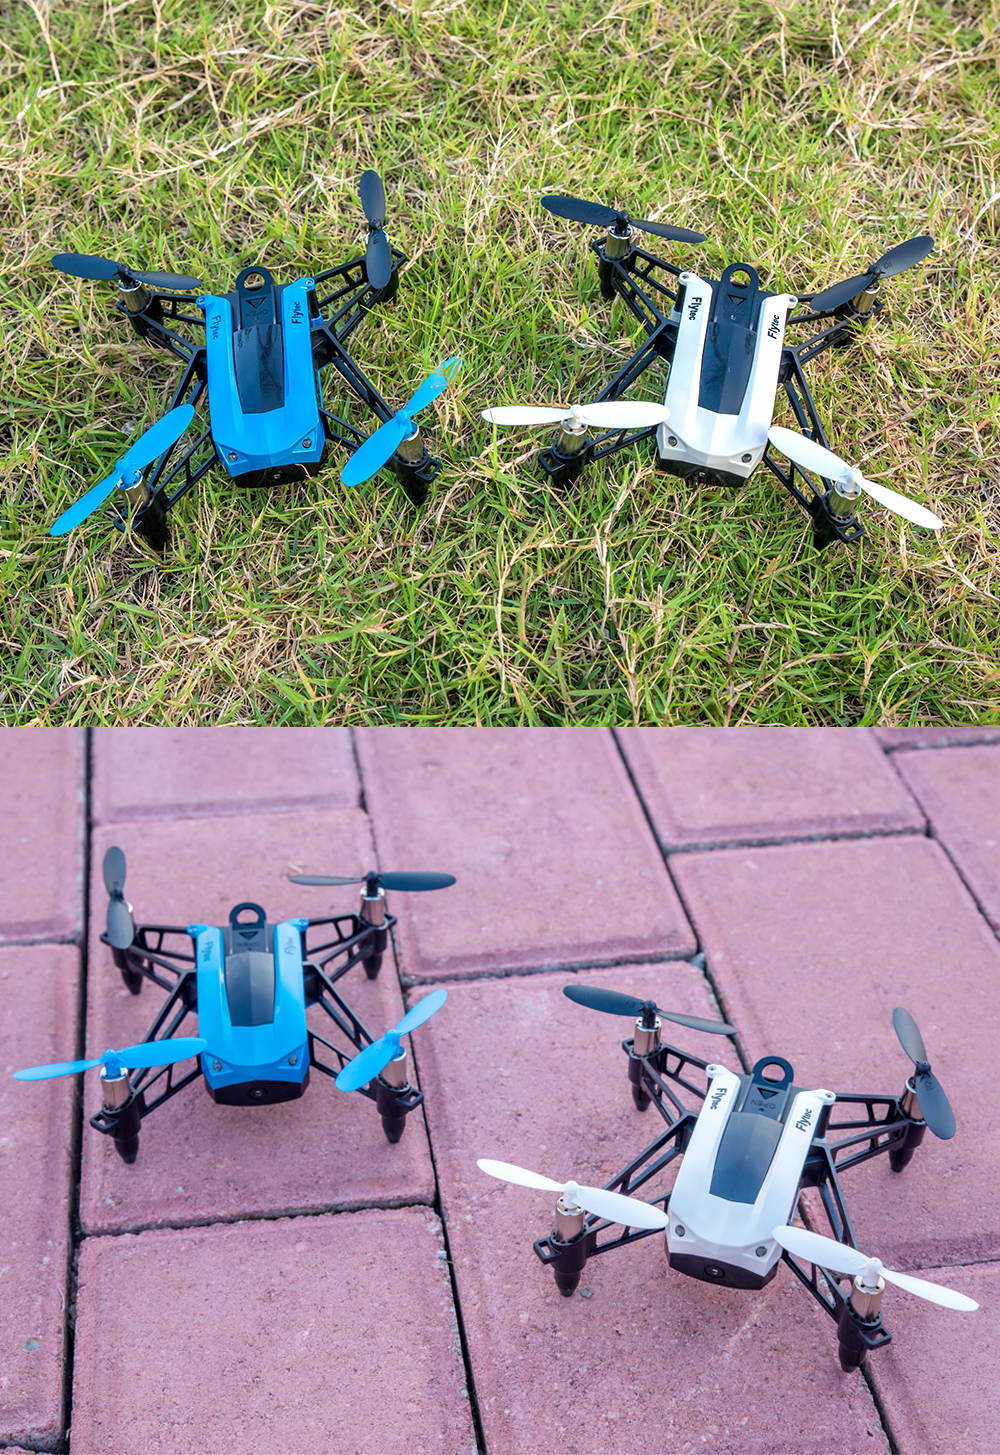 Flytec_T12S_X_Copter_With_0.3_MP_WIFI_Camera_Altitude_hold_Mode_Special_Frame_Mini_Beginner_Racing_Drone_RTF_19